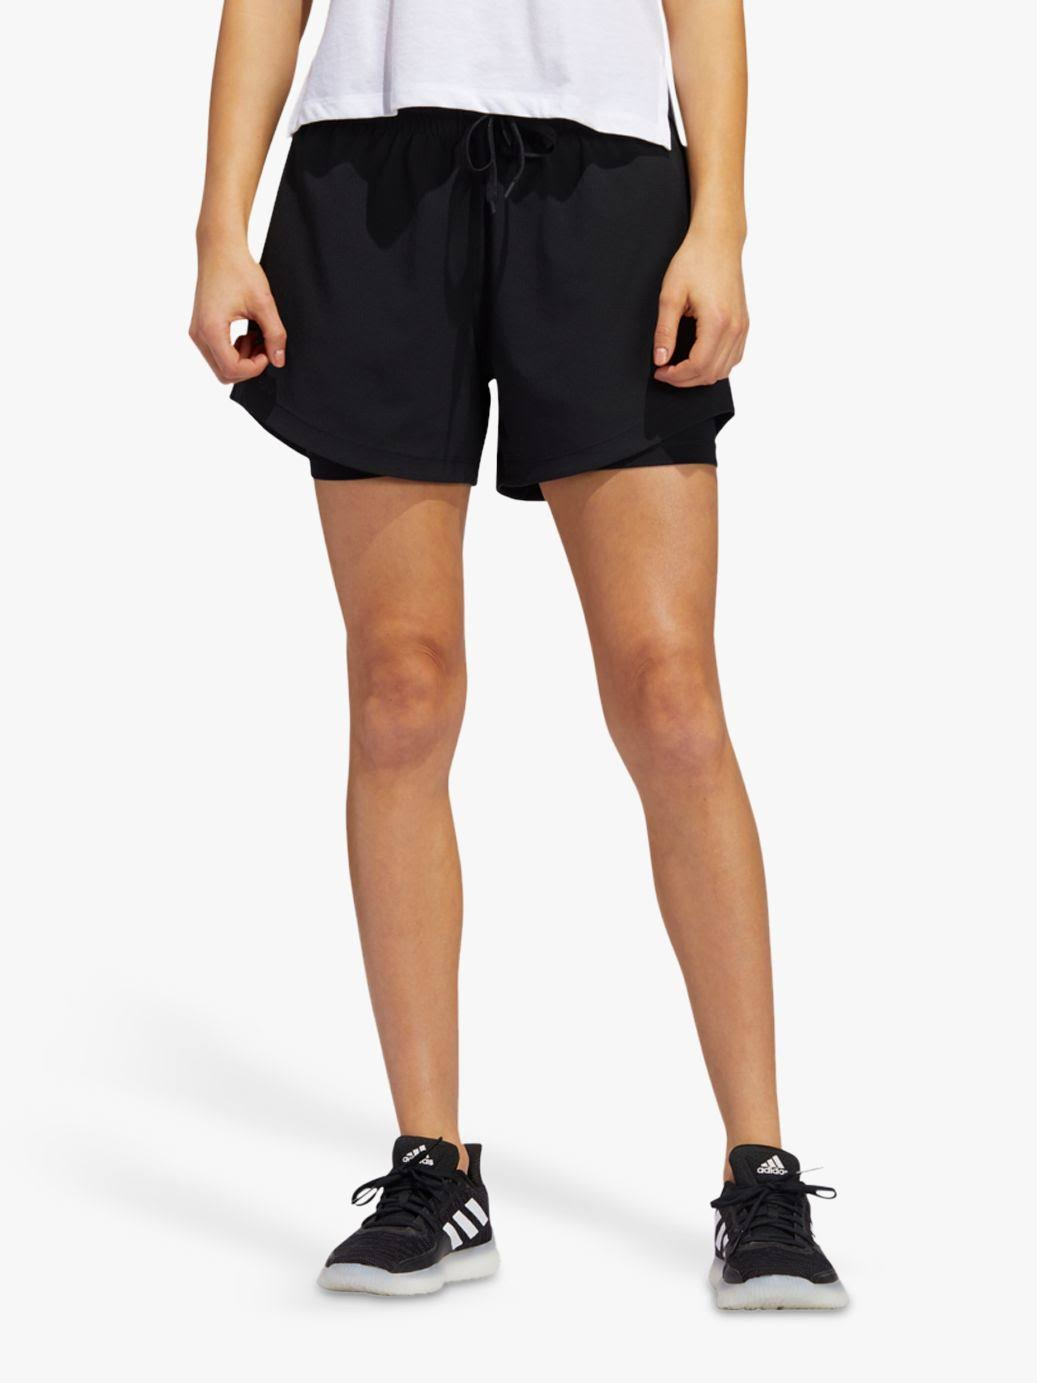 Adidas Two-in-one Shorts - Women - Black - 2XS